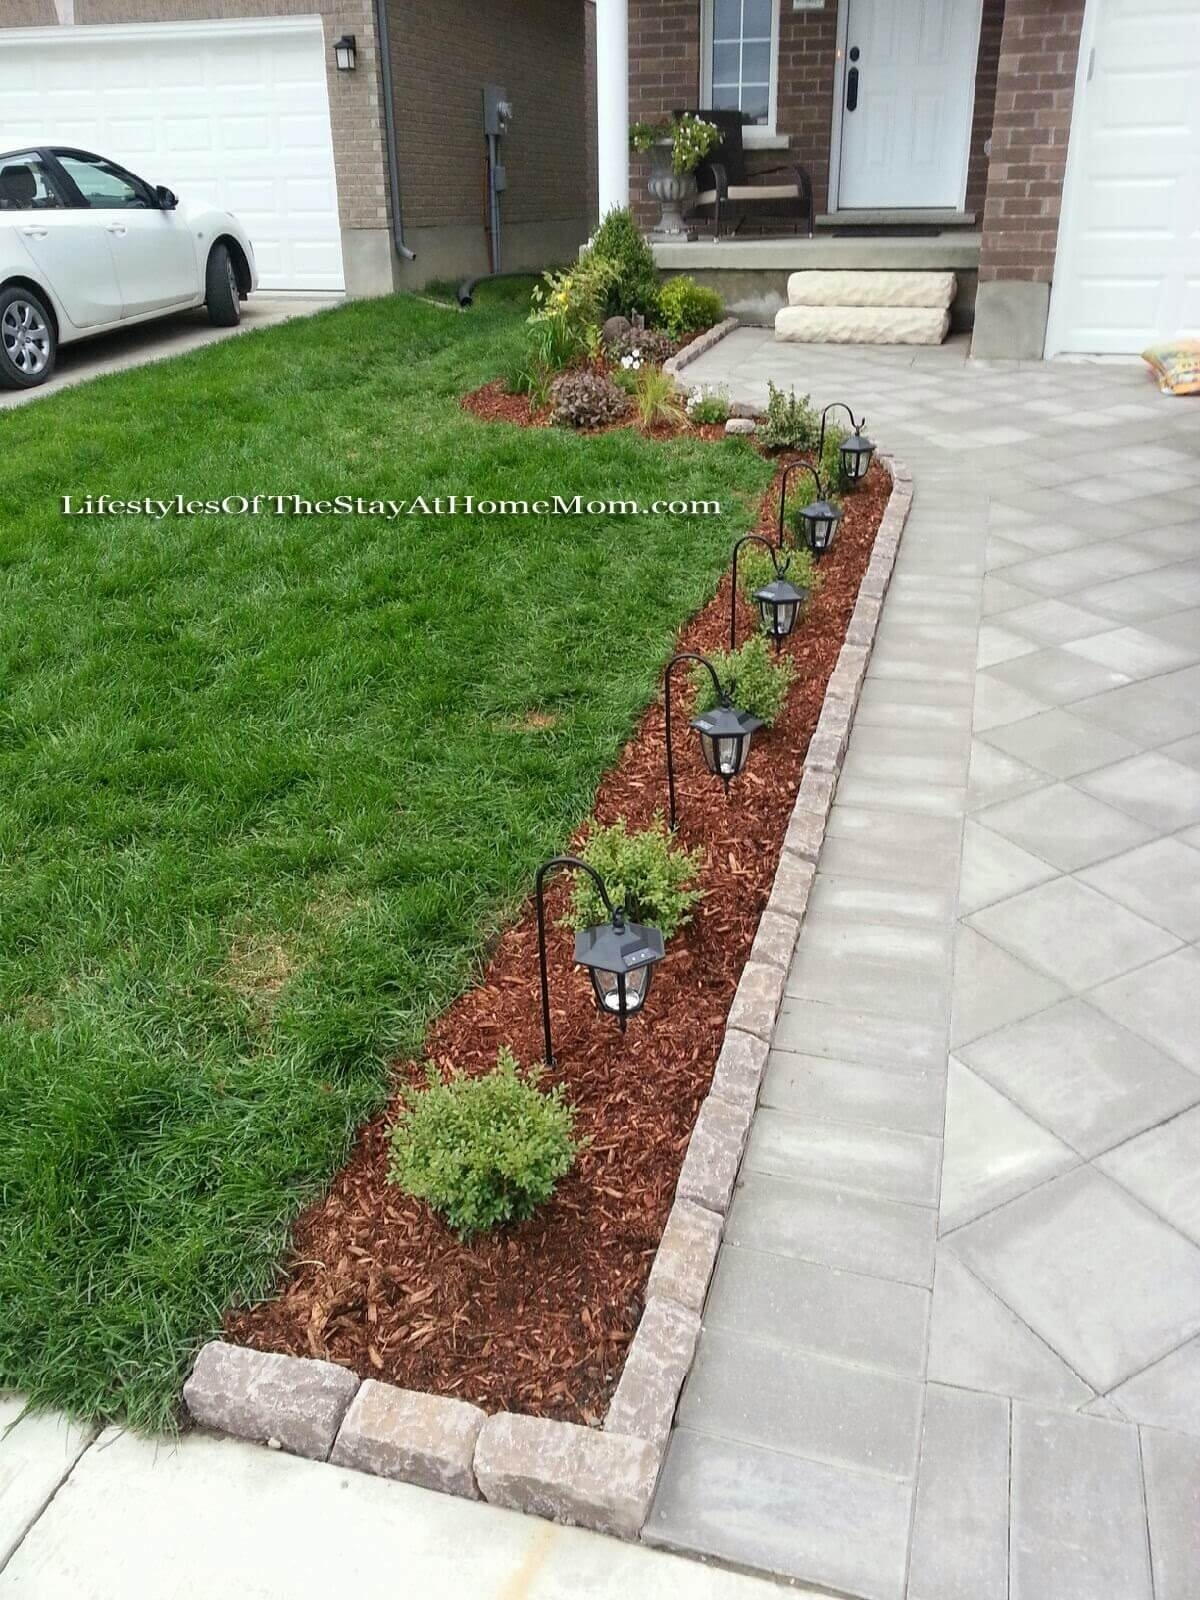 10 Most Recommended Landscape Ideas For Front Yard 50 best front yard landscaping ideas and garden designs for 2018 2021